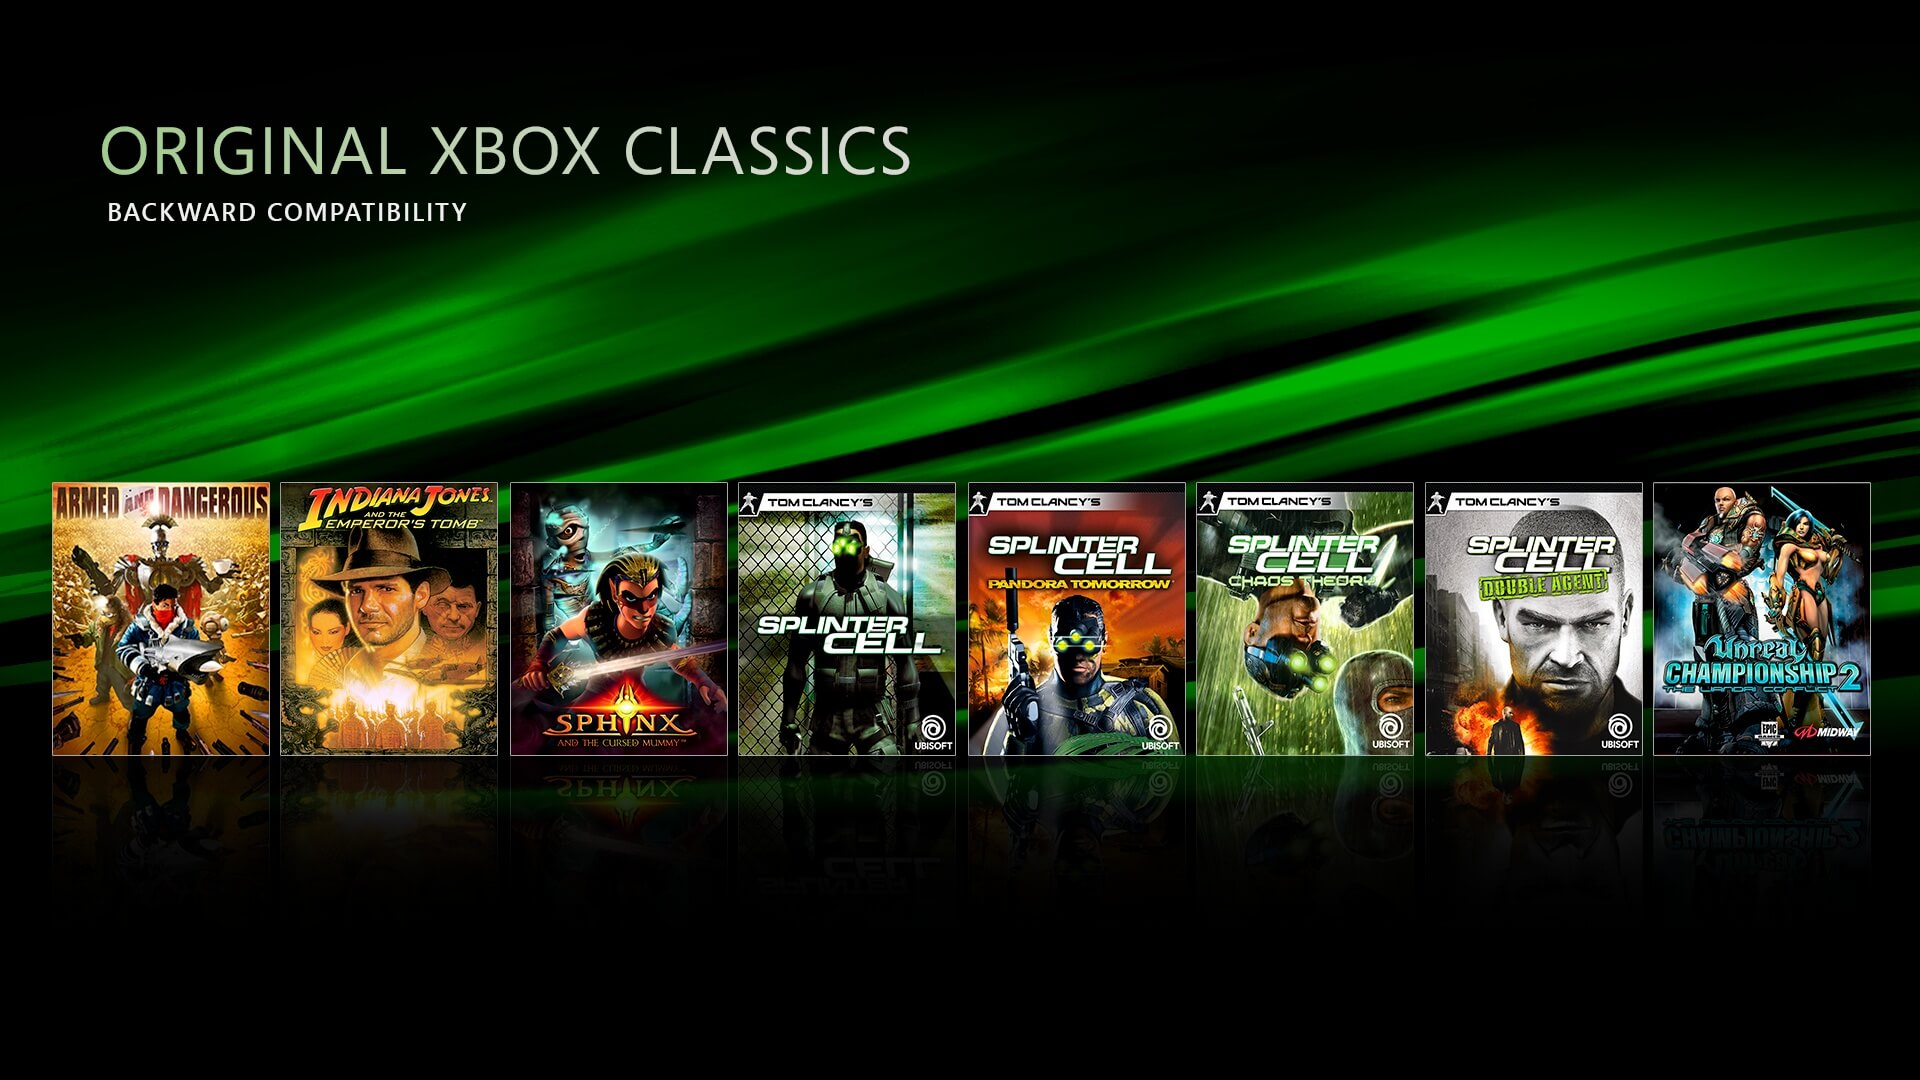 Microsoft adds last batch of games to the Xbox One Backward Compatibility catalog